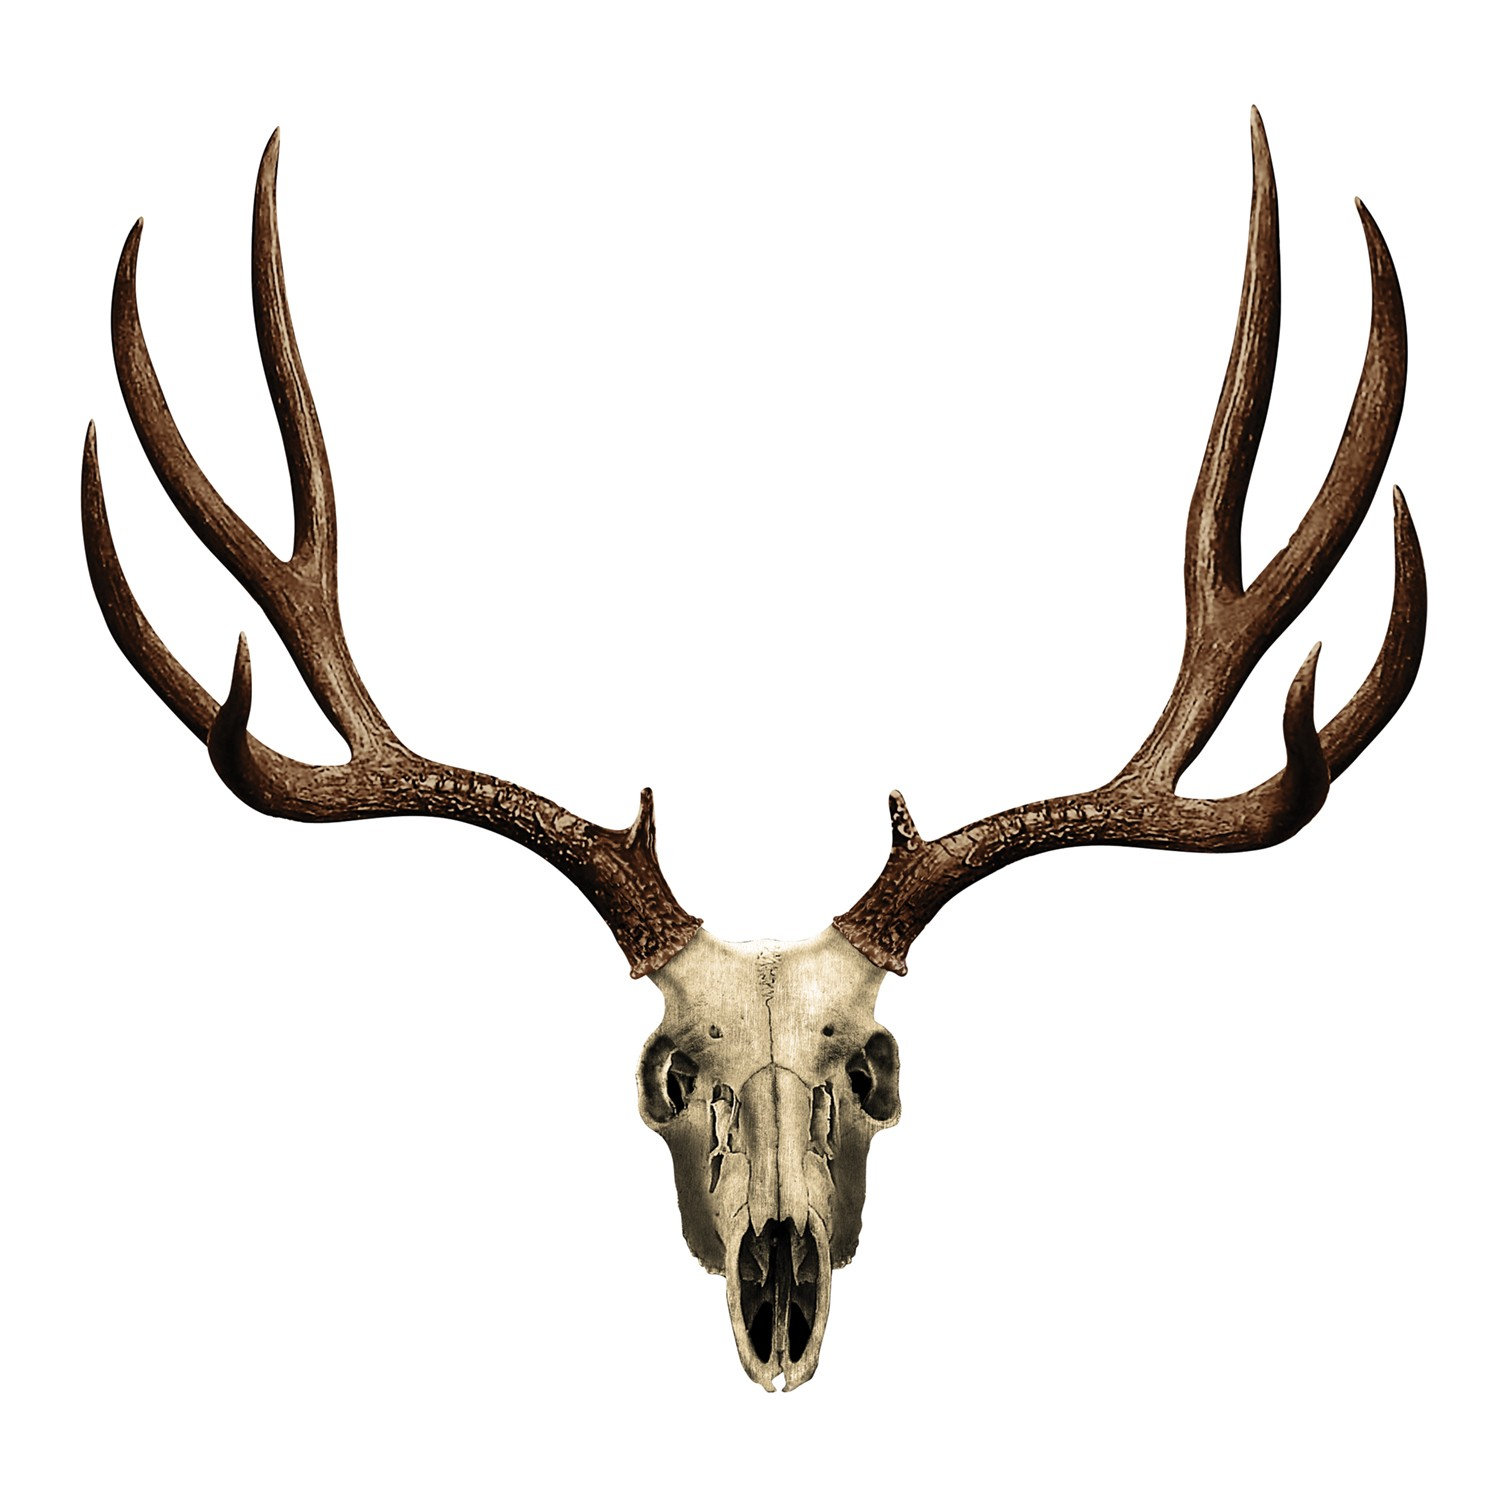 Ssckull clipart whitetail deer Best #14218 Clipartion Clip backgrounds